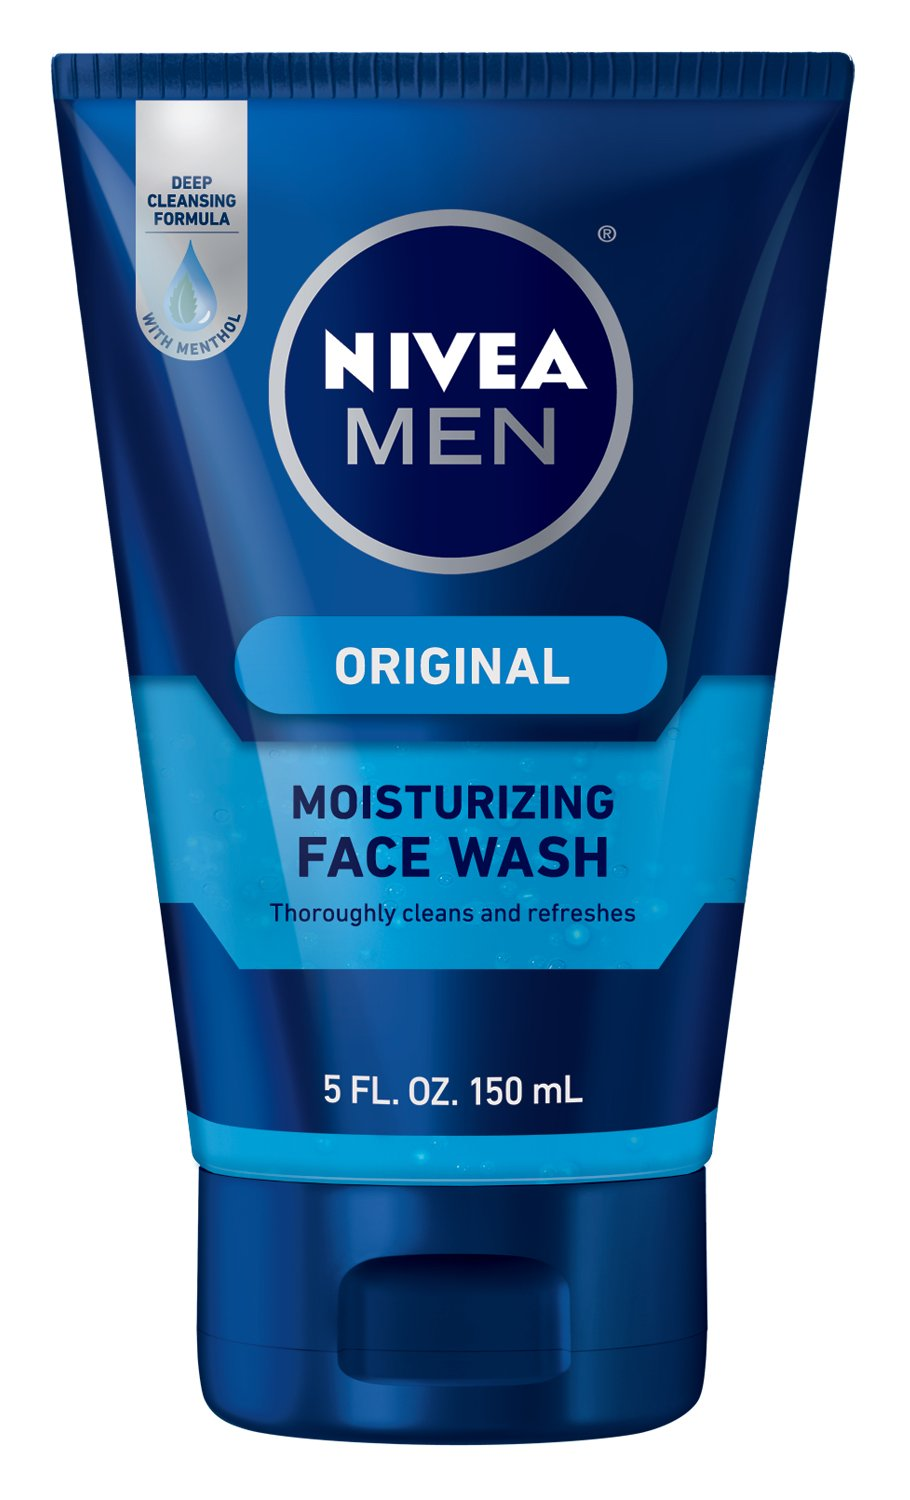 NIVEA MEN Original Moisturizing Cleansing Face Wash, 5 oz Tube